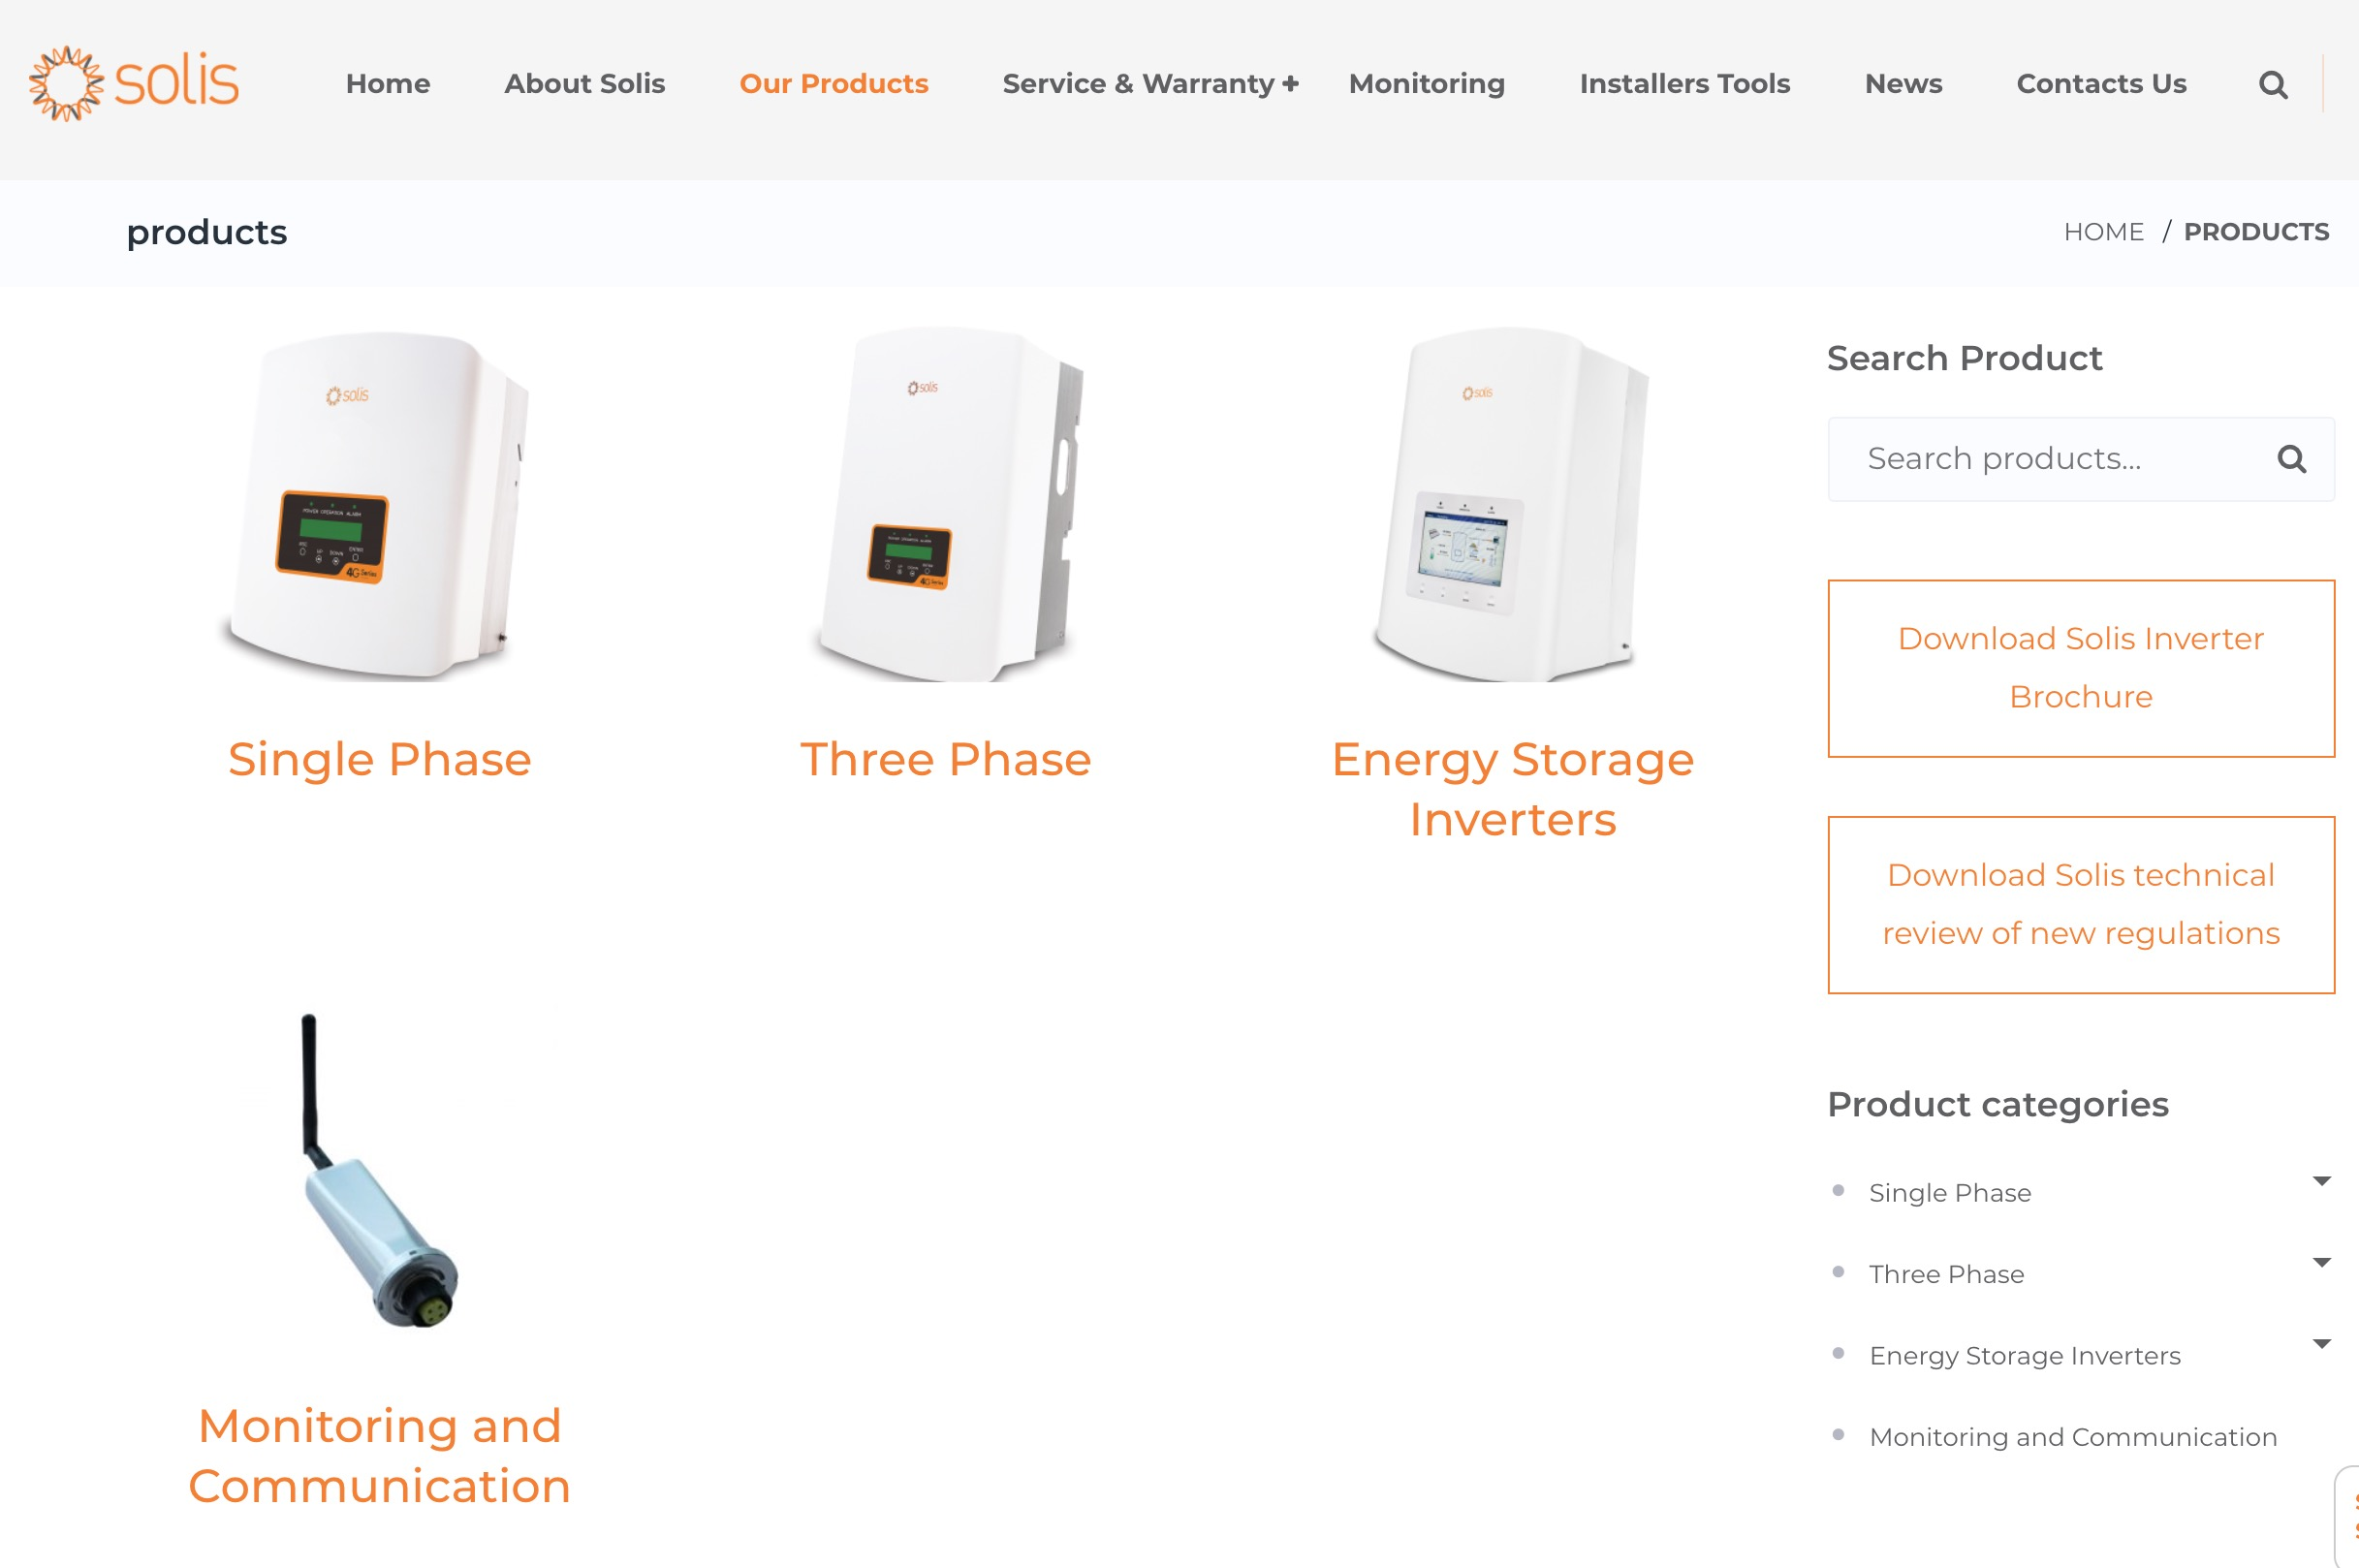 Solis Inverters products